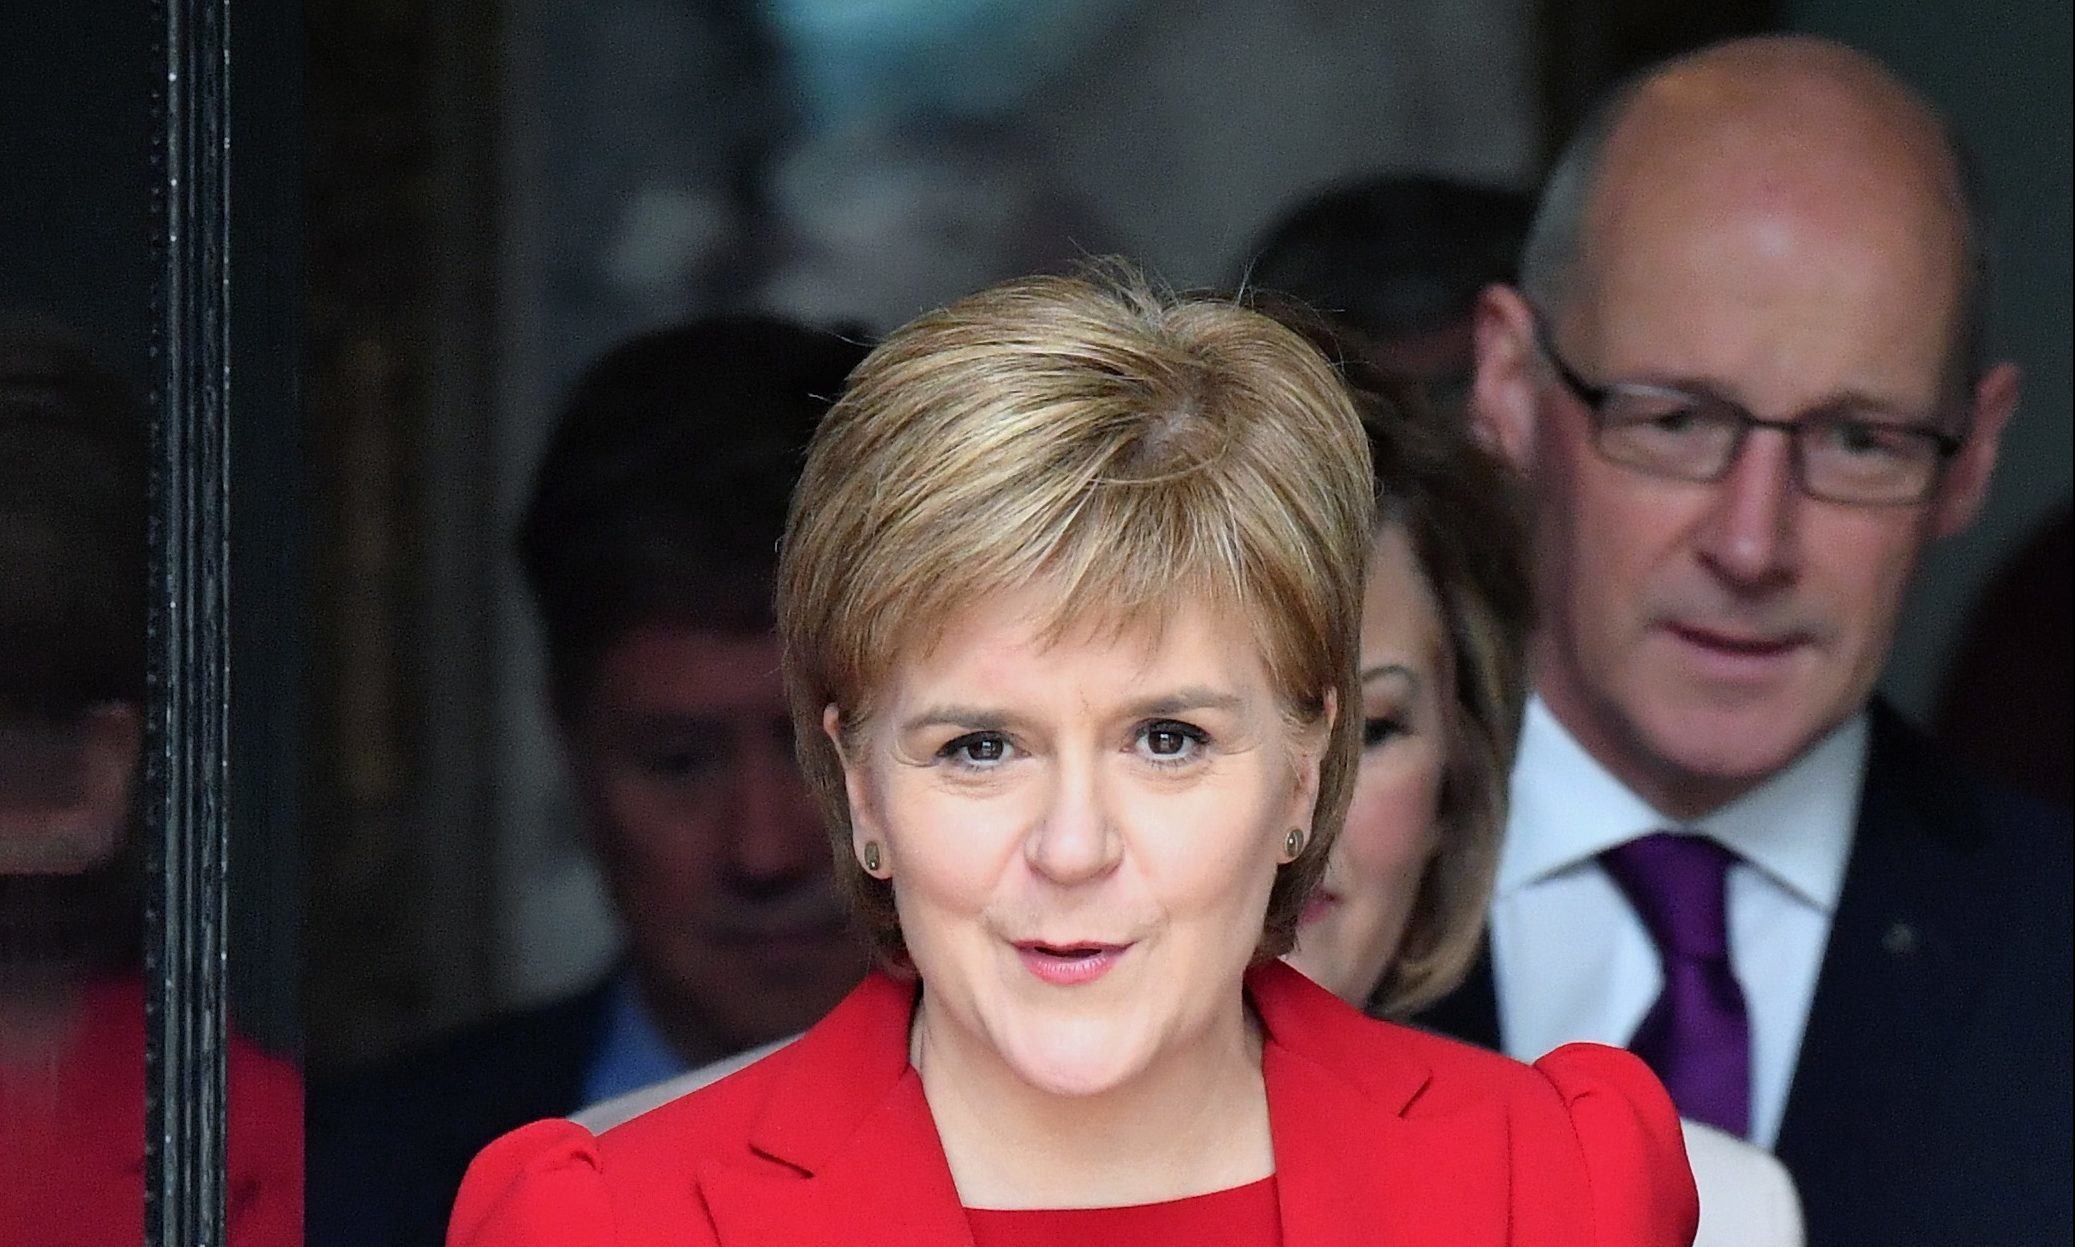 Nicola Sturgeon has handed education to her most trusted minister.